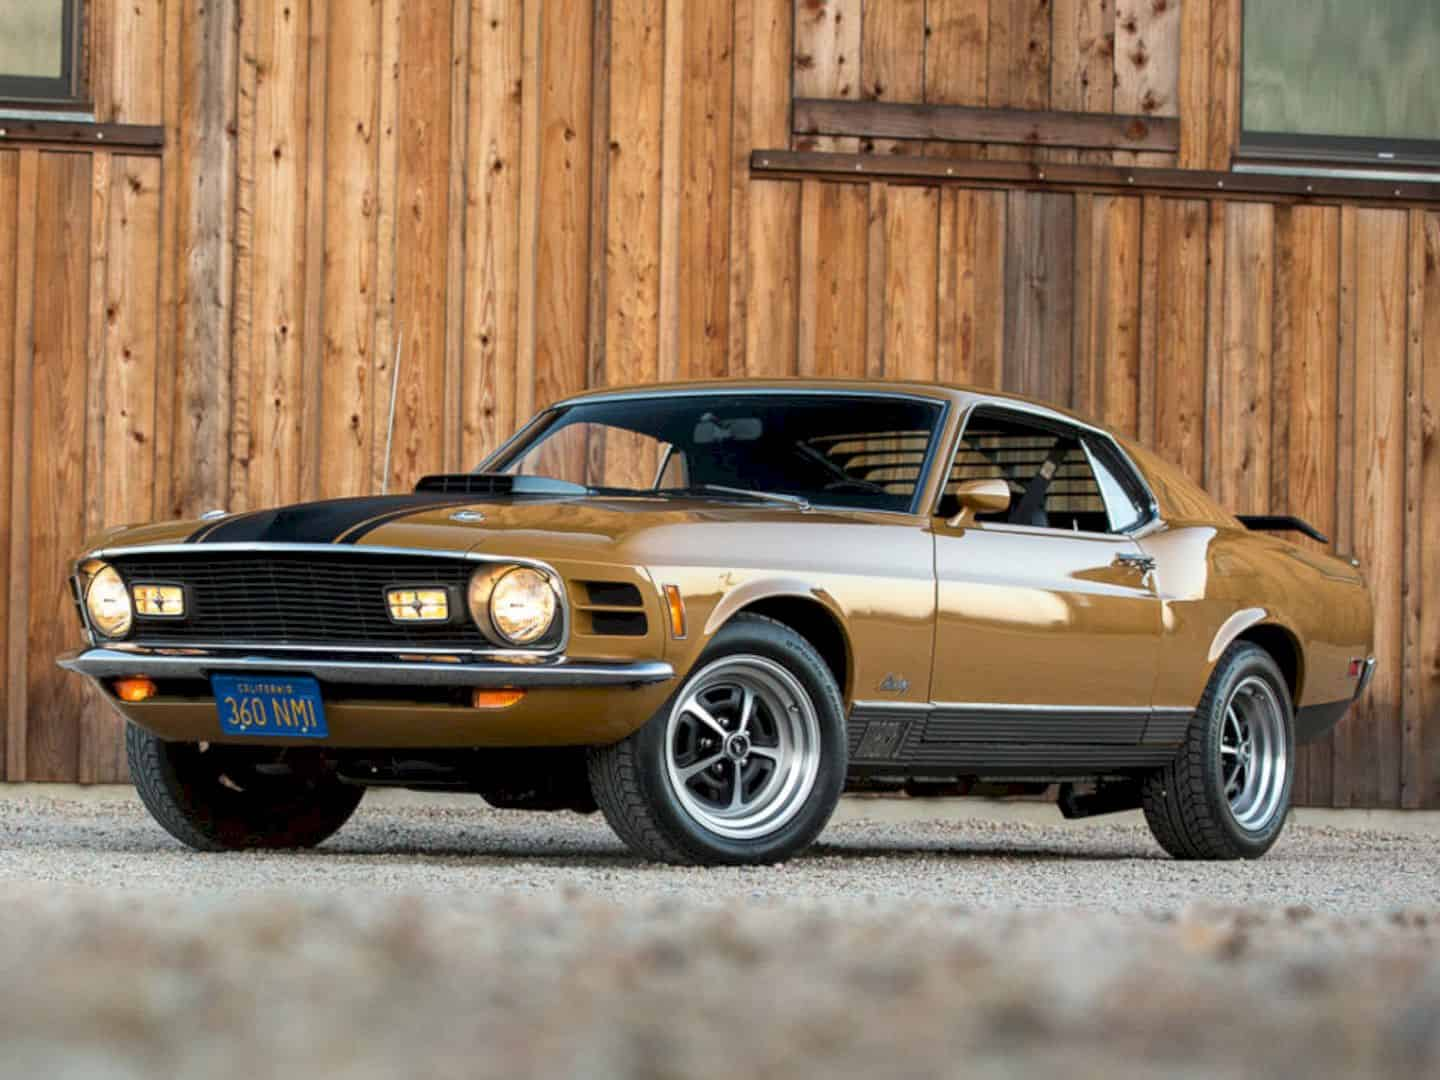 1970 Ford Mustang Mach 1 By Corvette Mike 8